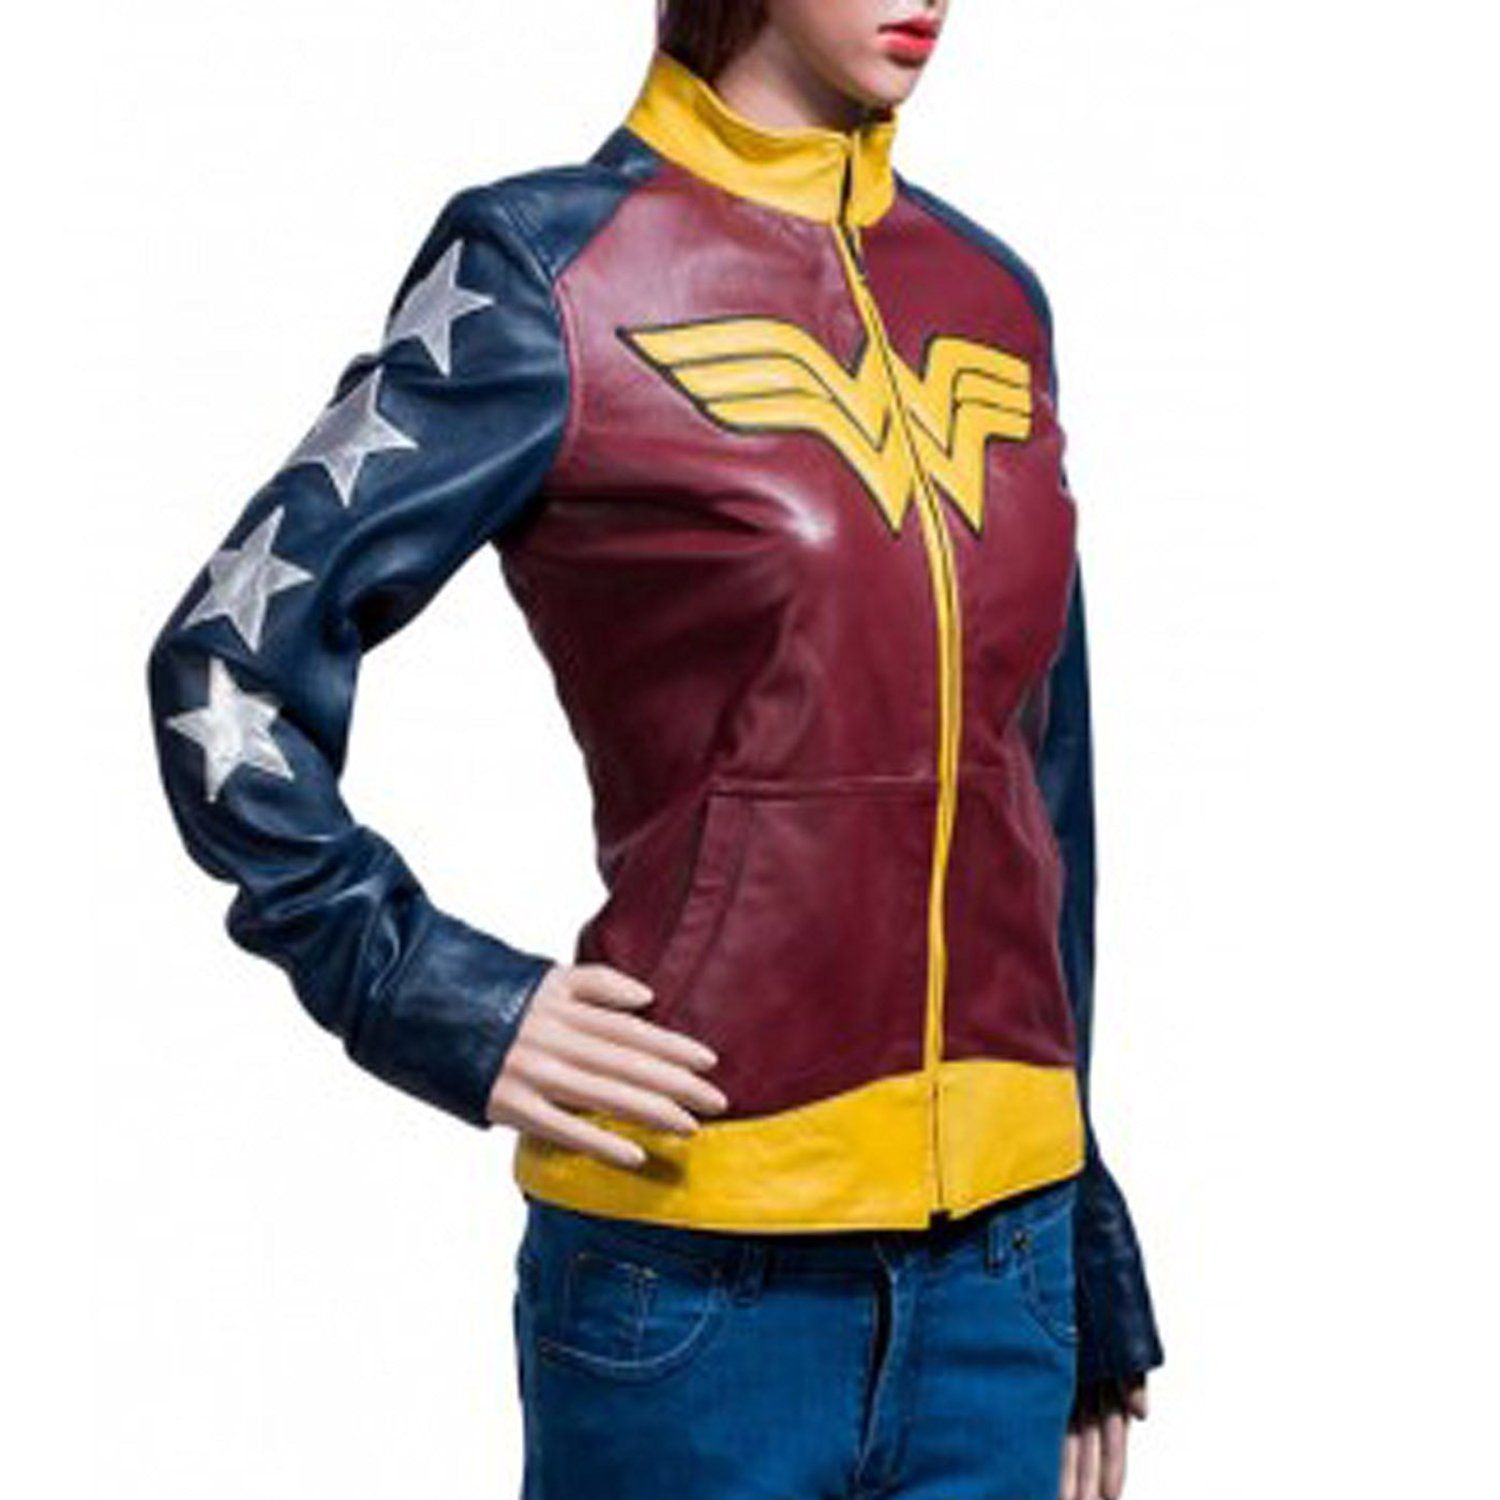 Wonder Woman Leather Jacket l Leather Jacket For Women: Amazon.co.uk: Clothing - Wonder woman ...